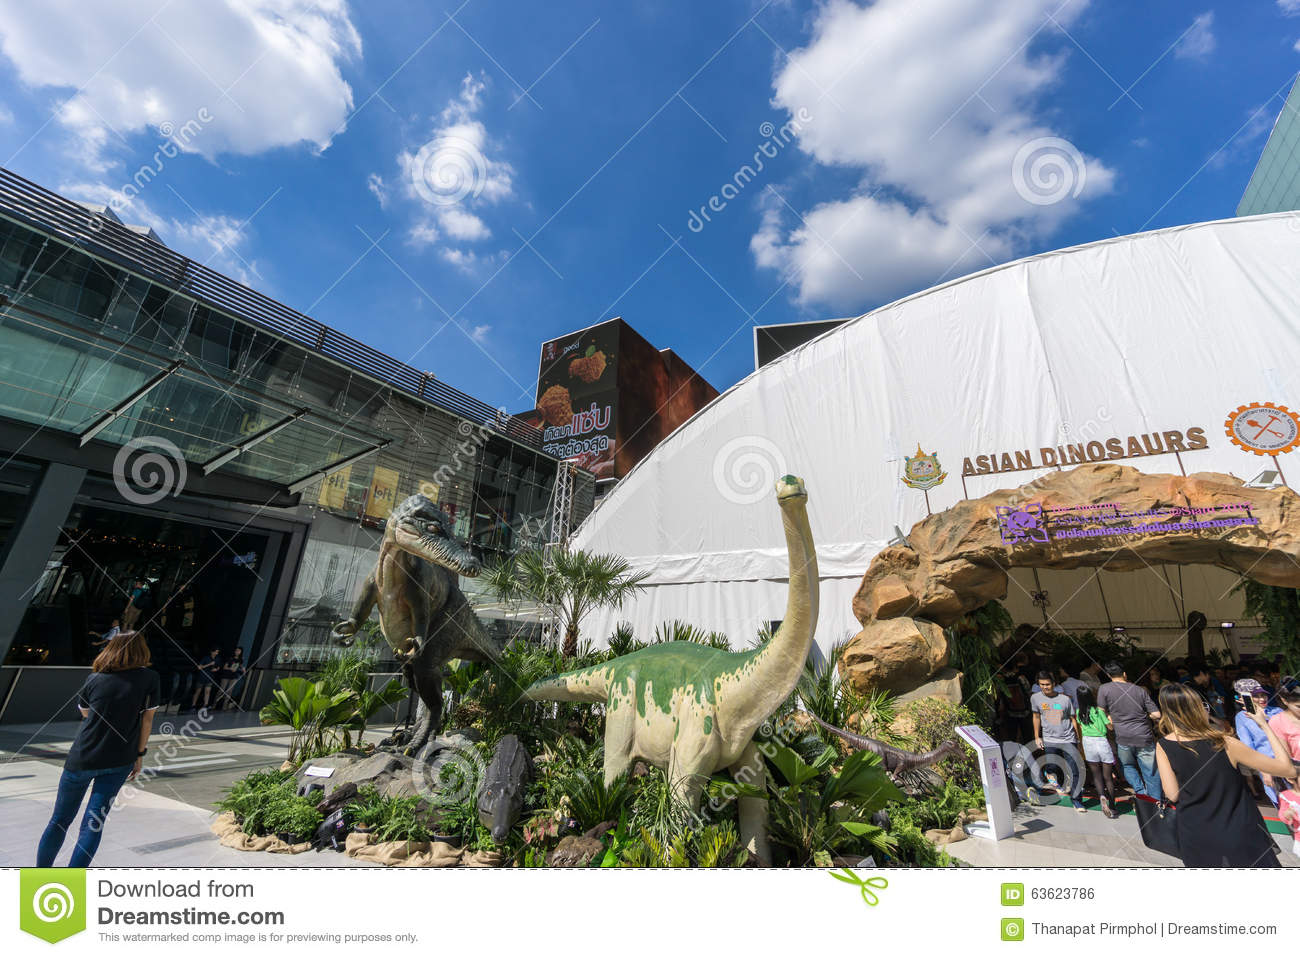 Bangkok, Thailand - 29 November 2015 : The Outdoor Exhibition Asian Dinosaurs in front of Siam Paragon (Luxury Shopping Mall at th